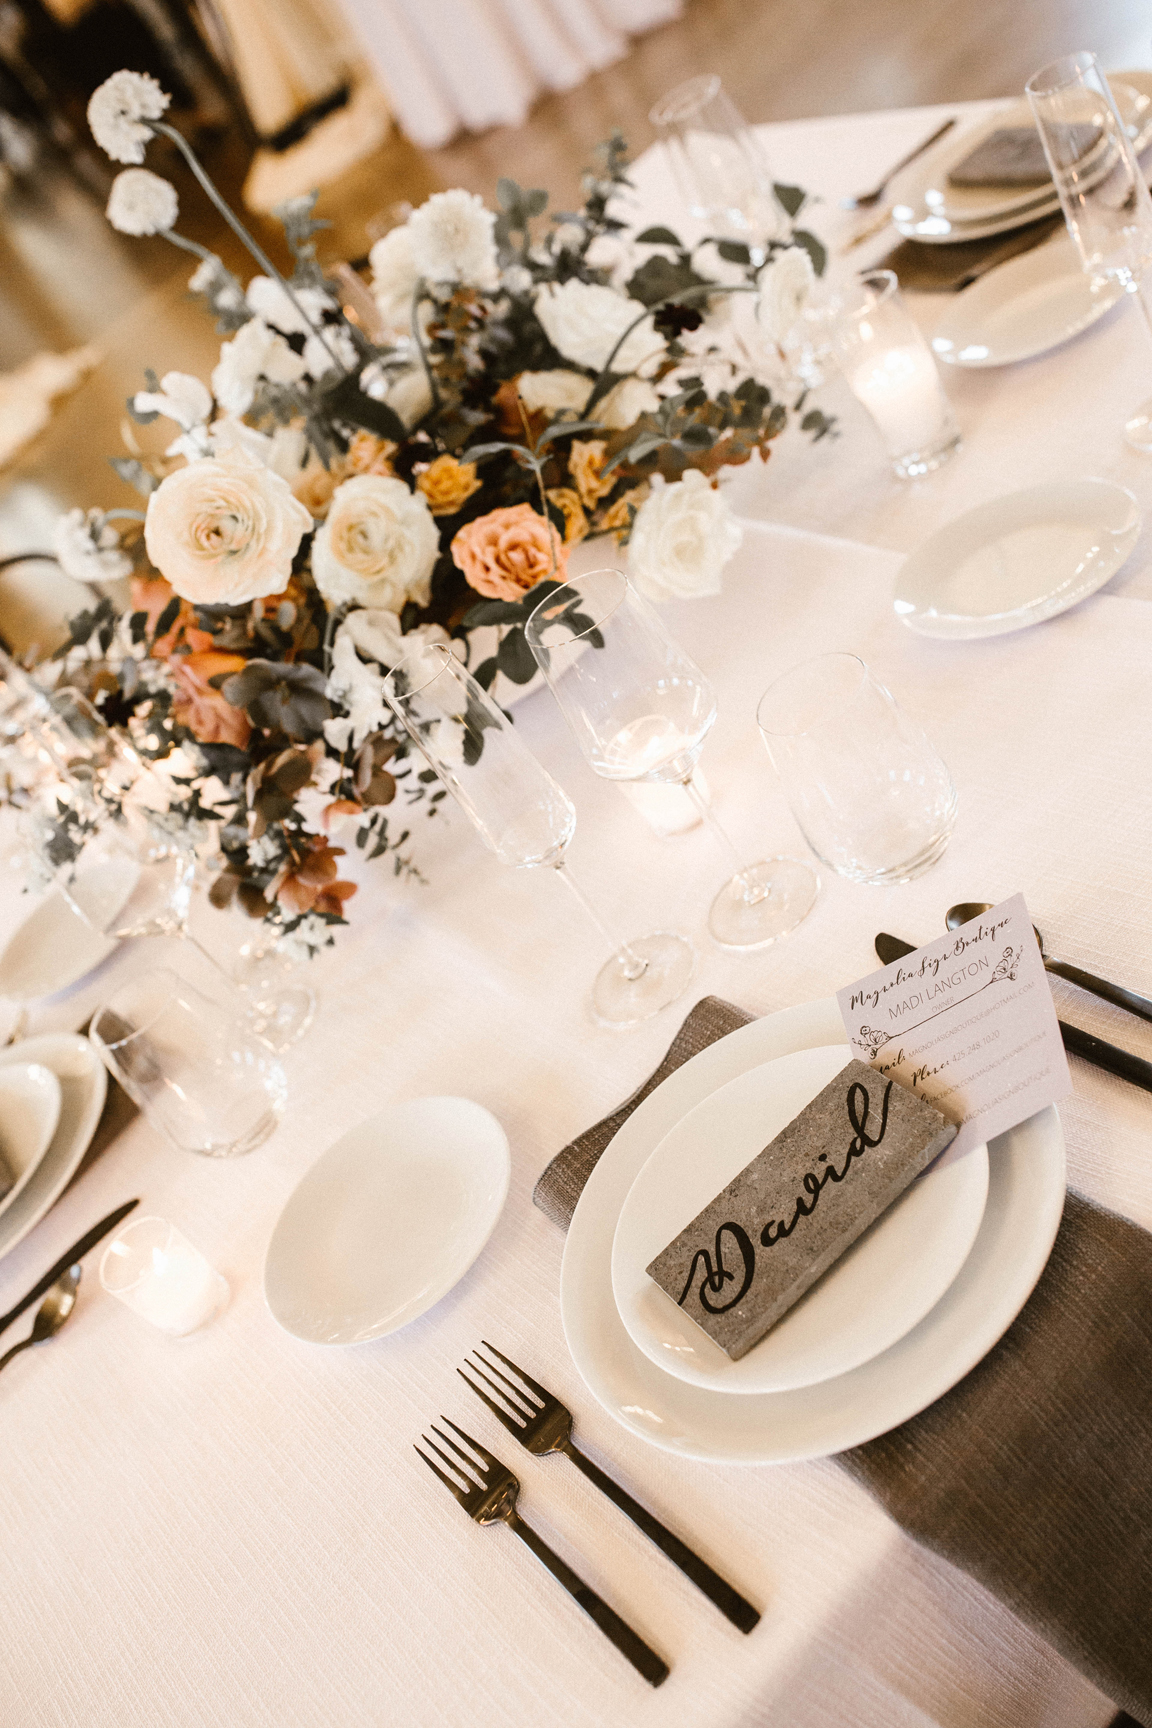 Hollywood+Anderson+House_Woodinville_2017_Weddings+In+Woodinville176.jpg